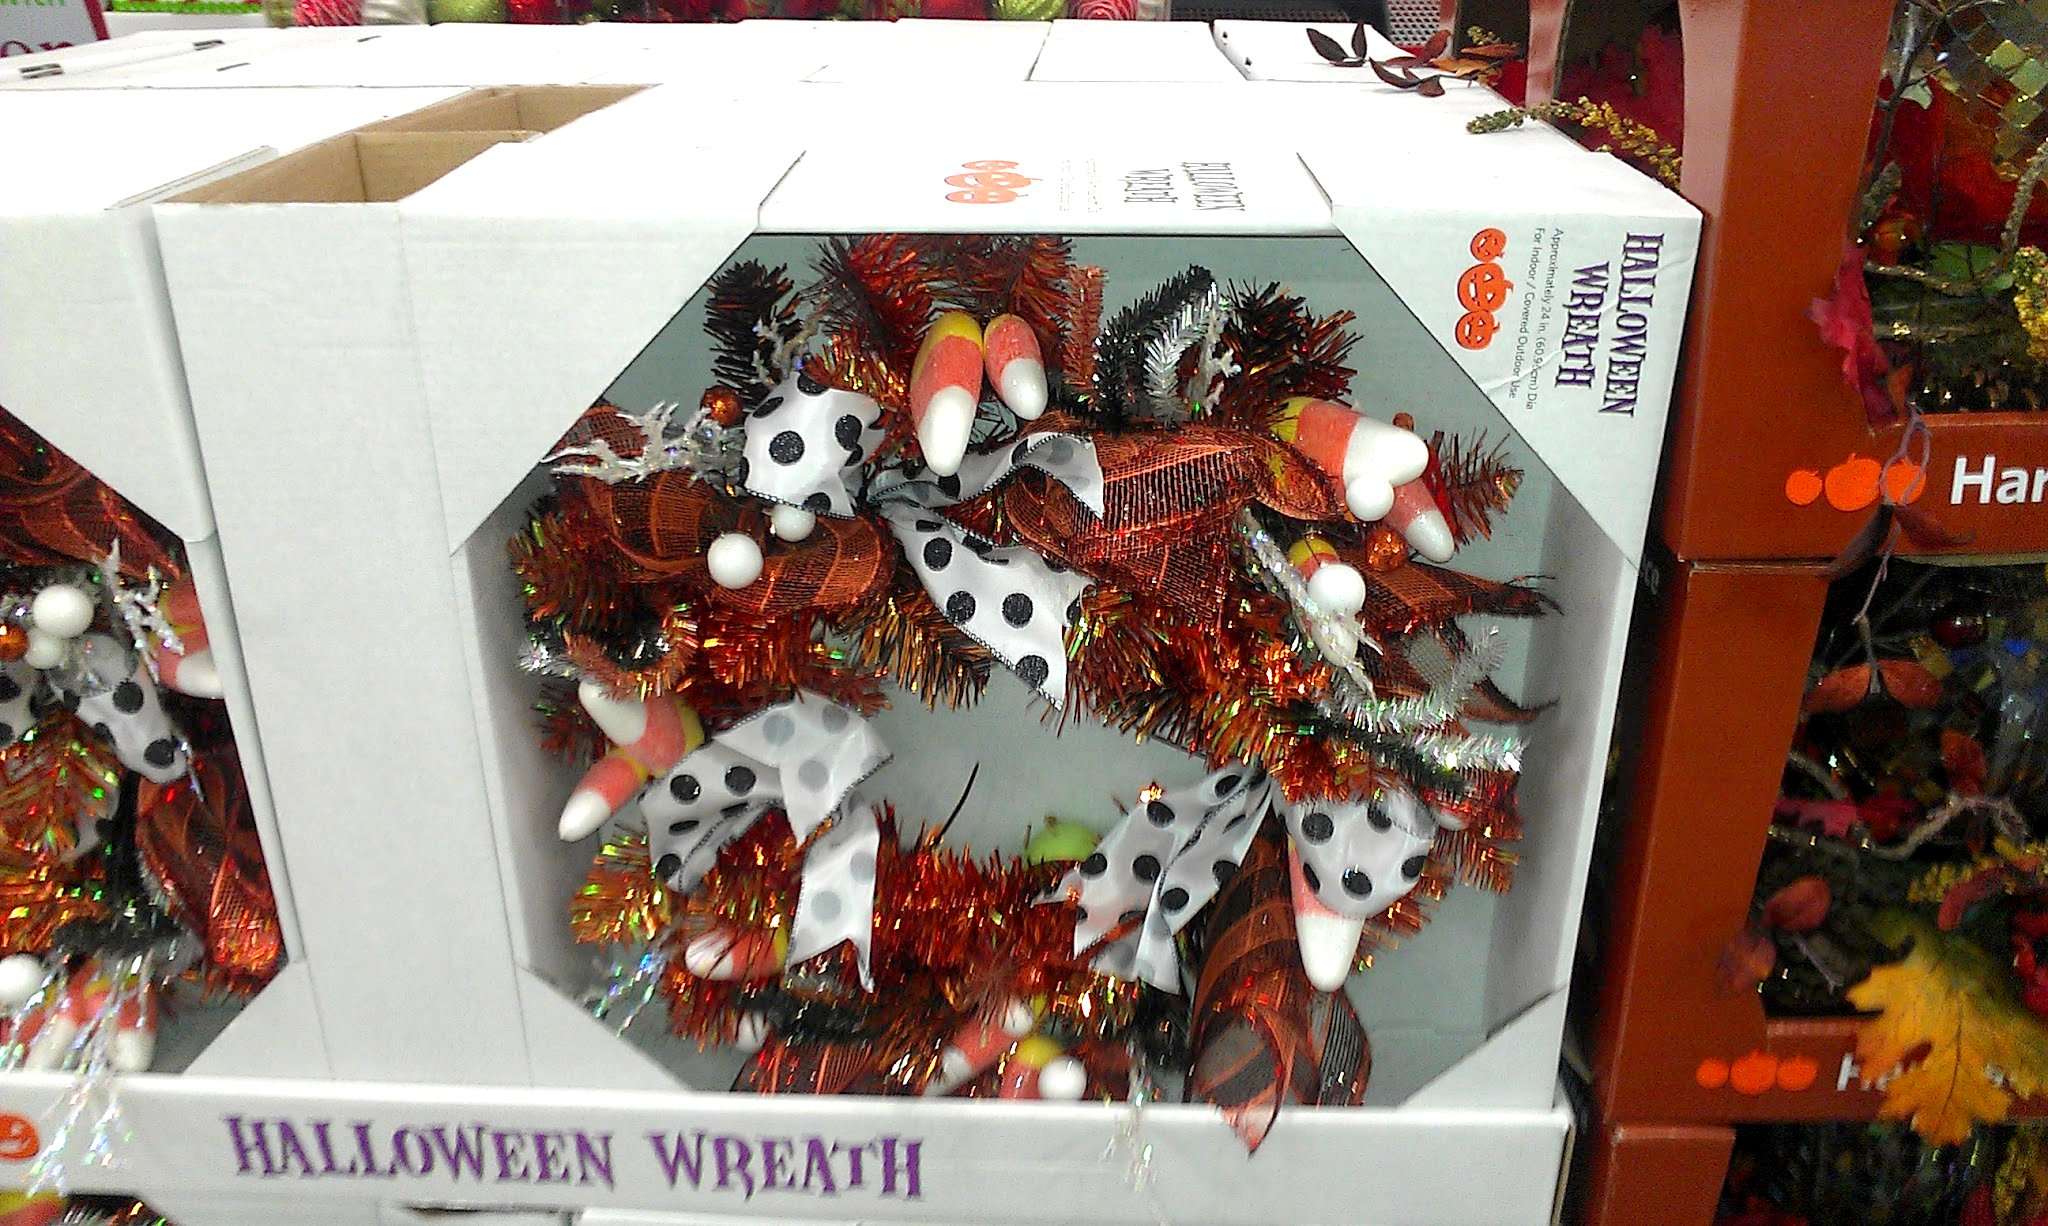 Photo: I have a friend who makes Halloween wreaths, but they are more icky than this. I think this one is fun!